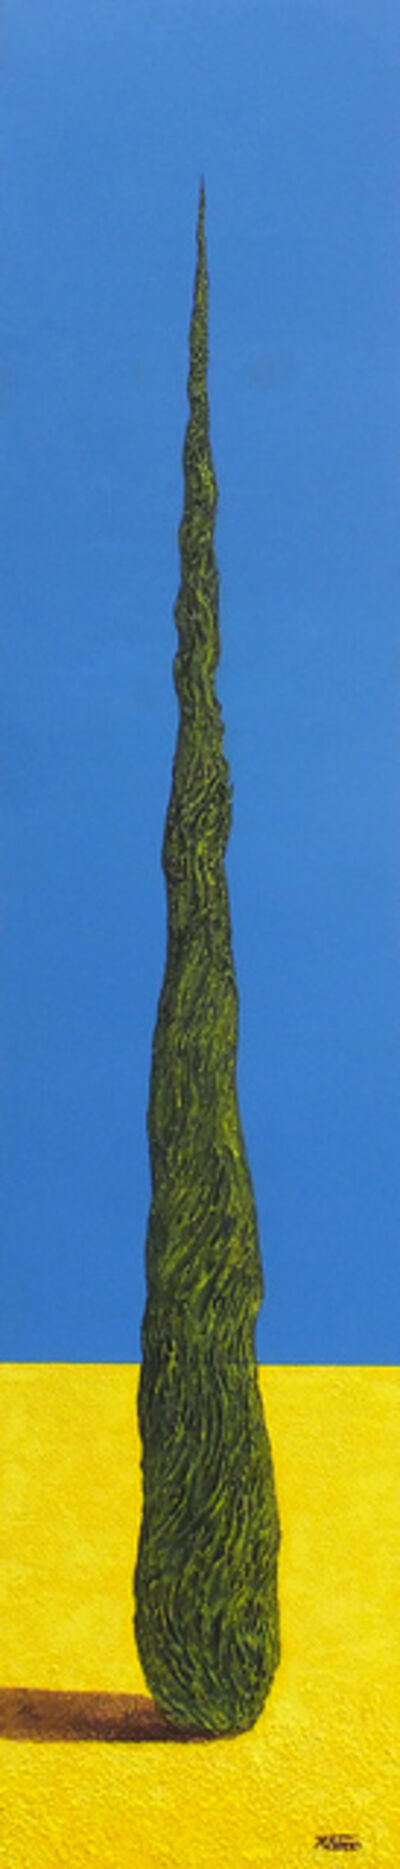 Ronnie Ford, 'Cypress Series, 1, Summer- Day', 2013